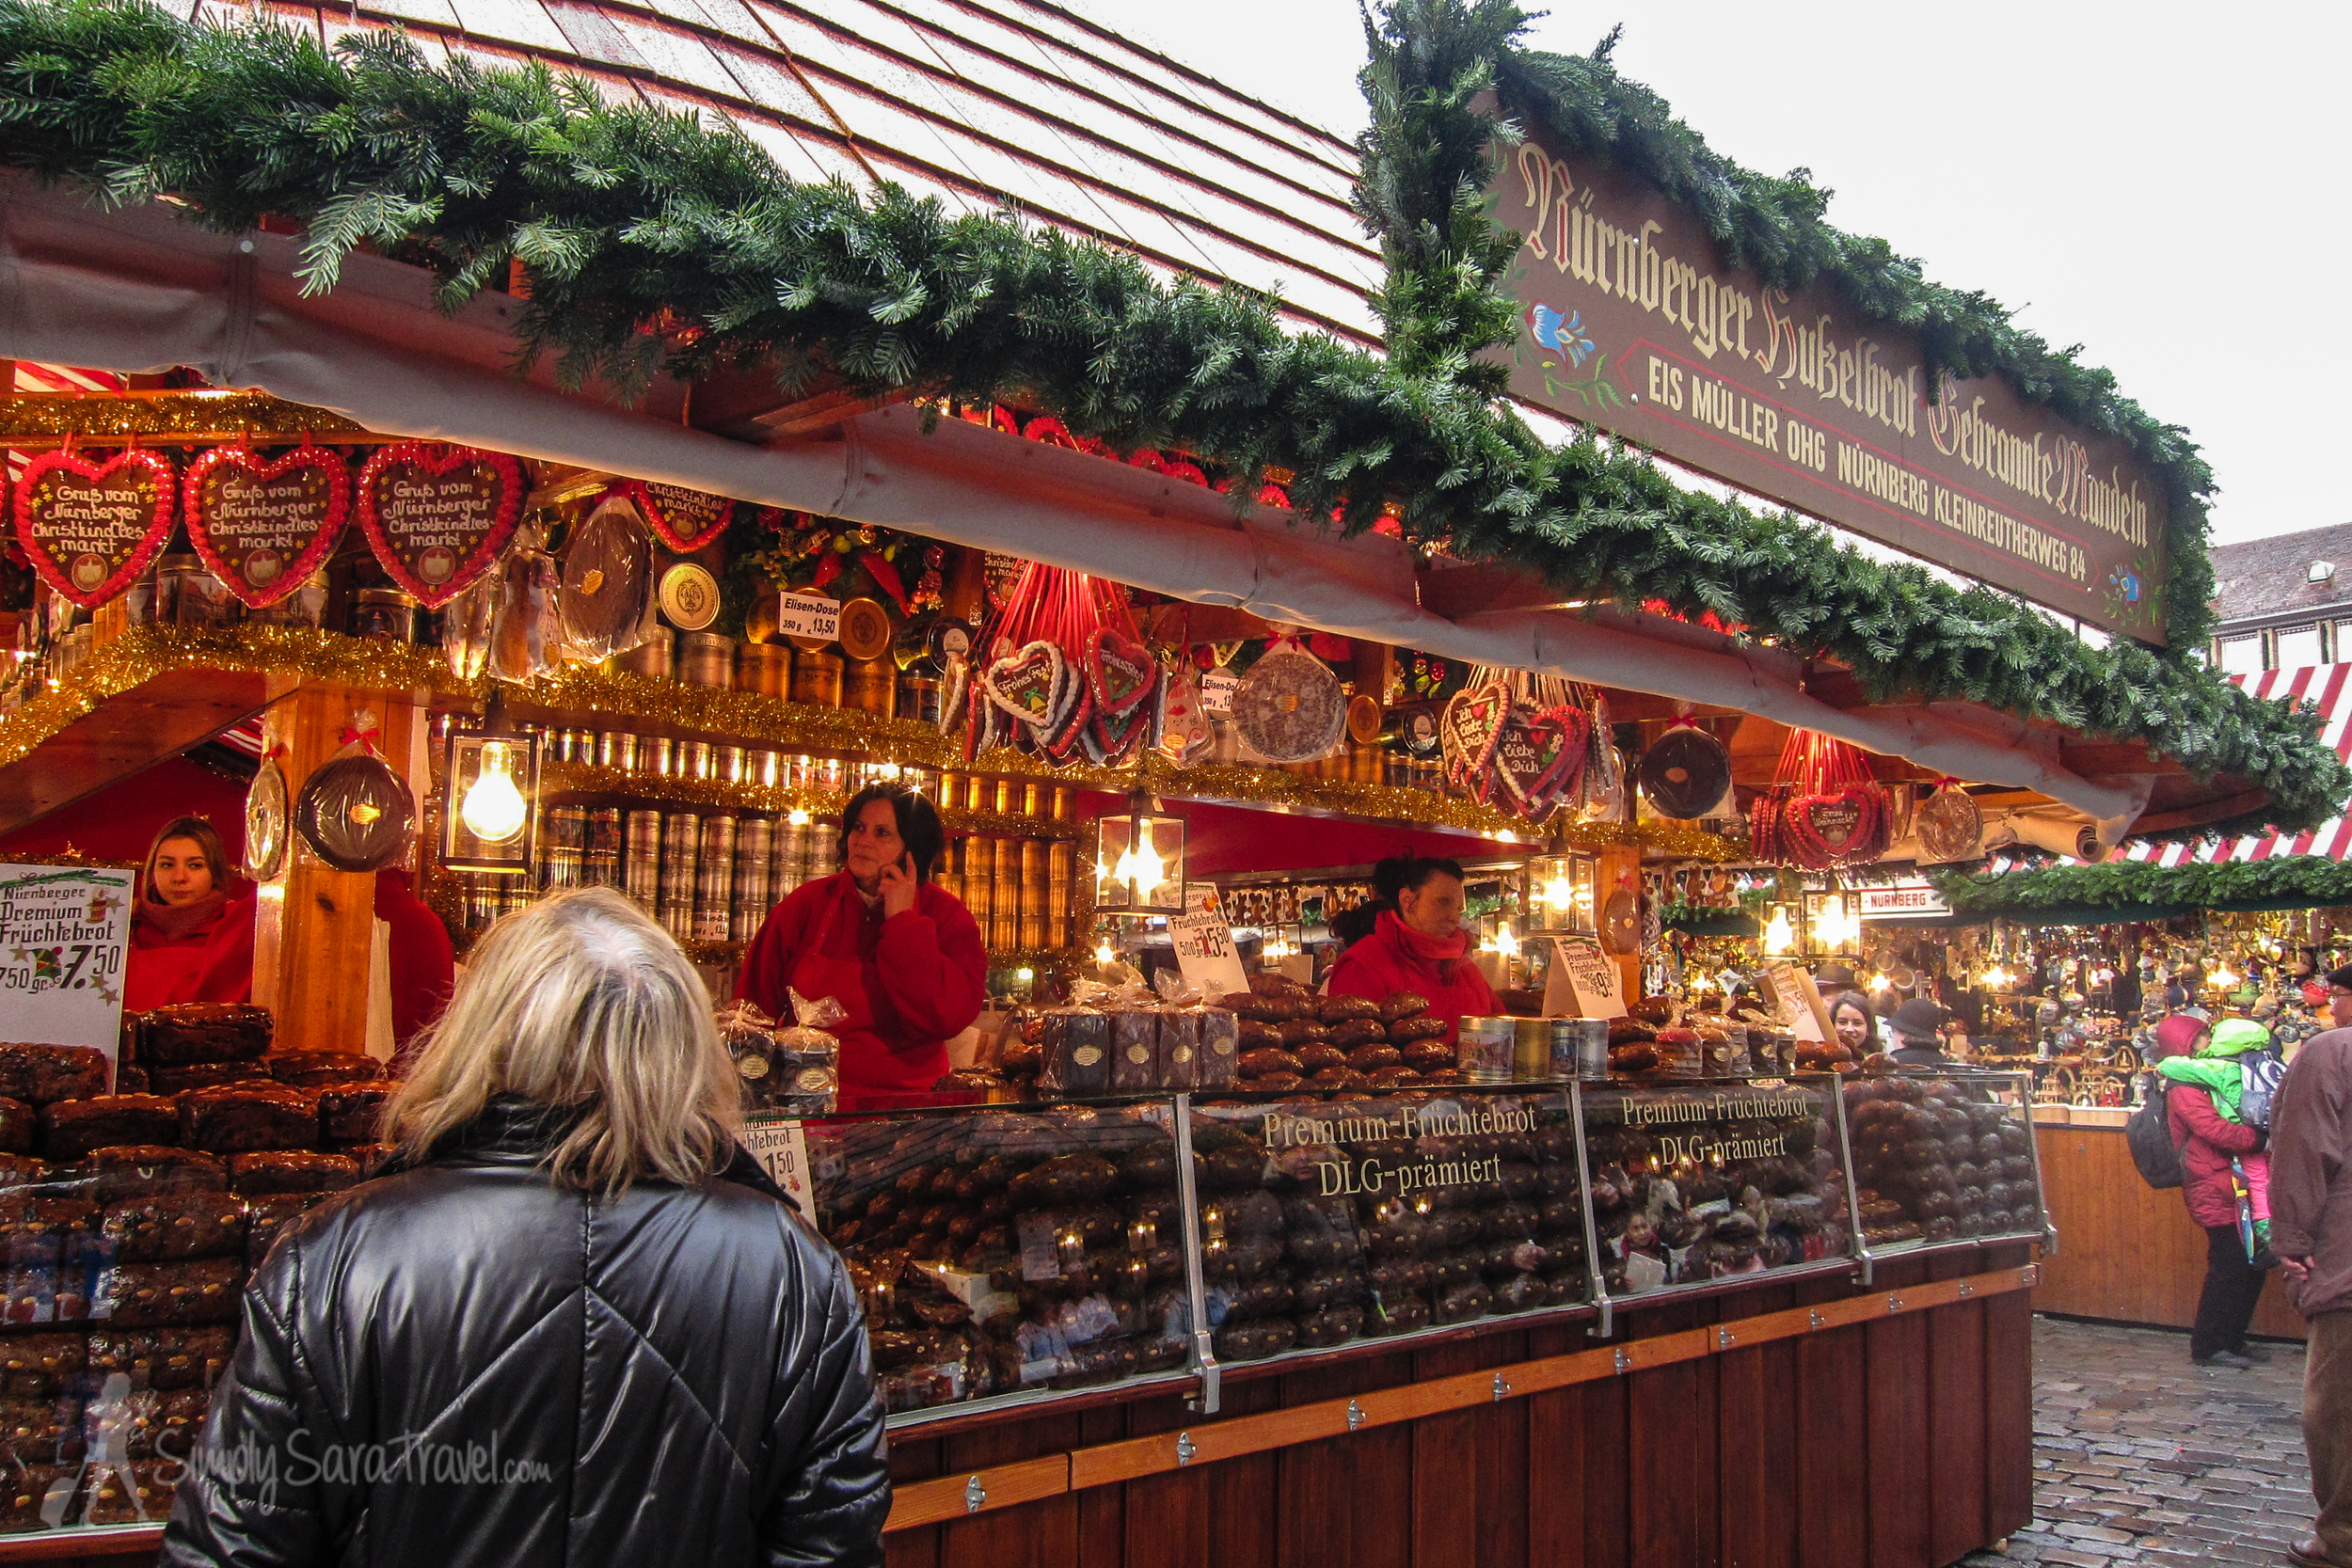 I apparently was too busy eating the cookies to snap a picture of the stand, but here's another treat found in Nuremberg. Unfortunately theFrüchtebrot (fruit bread) didn't entice me like theLebkuchen did.